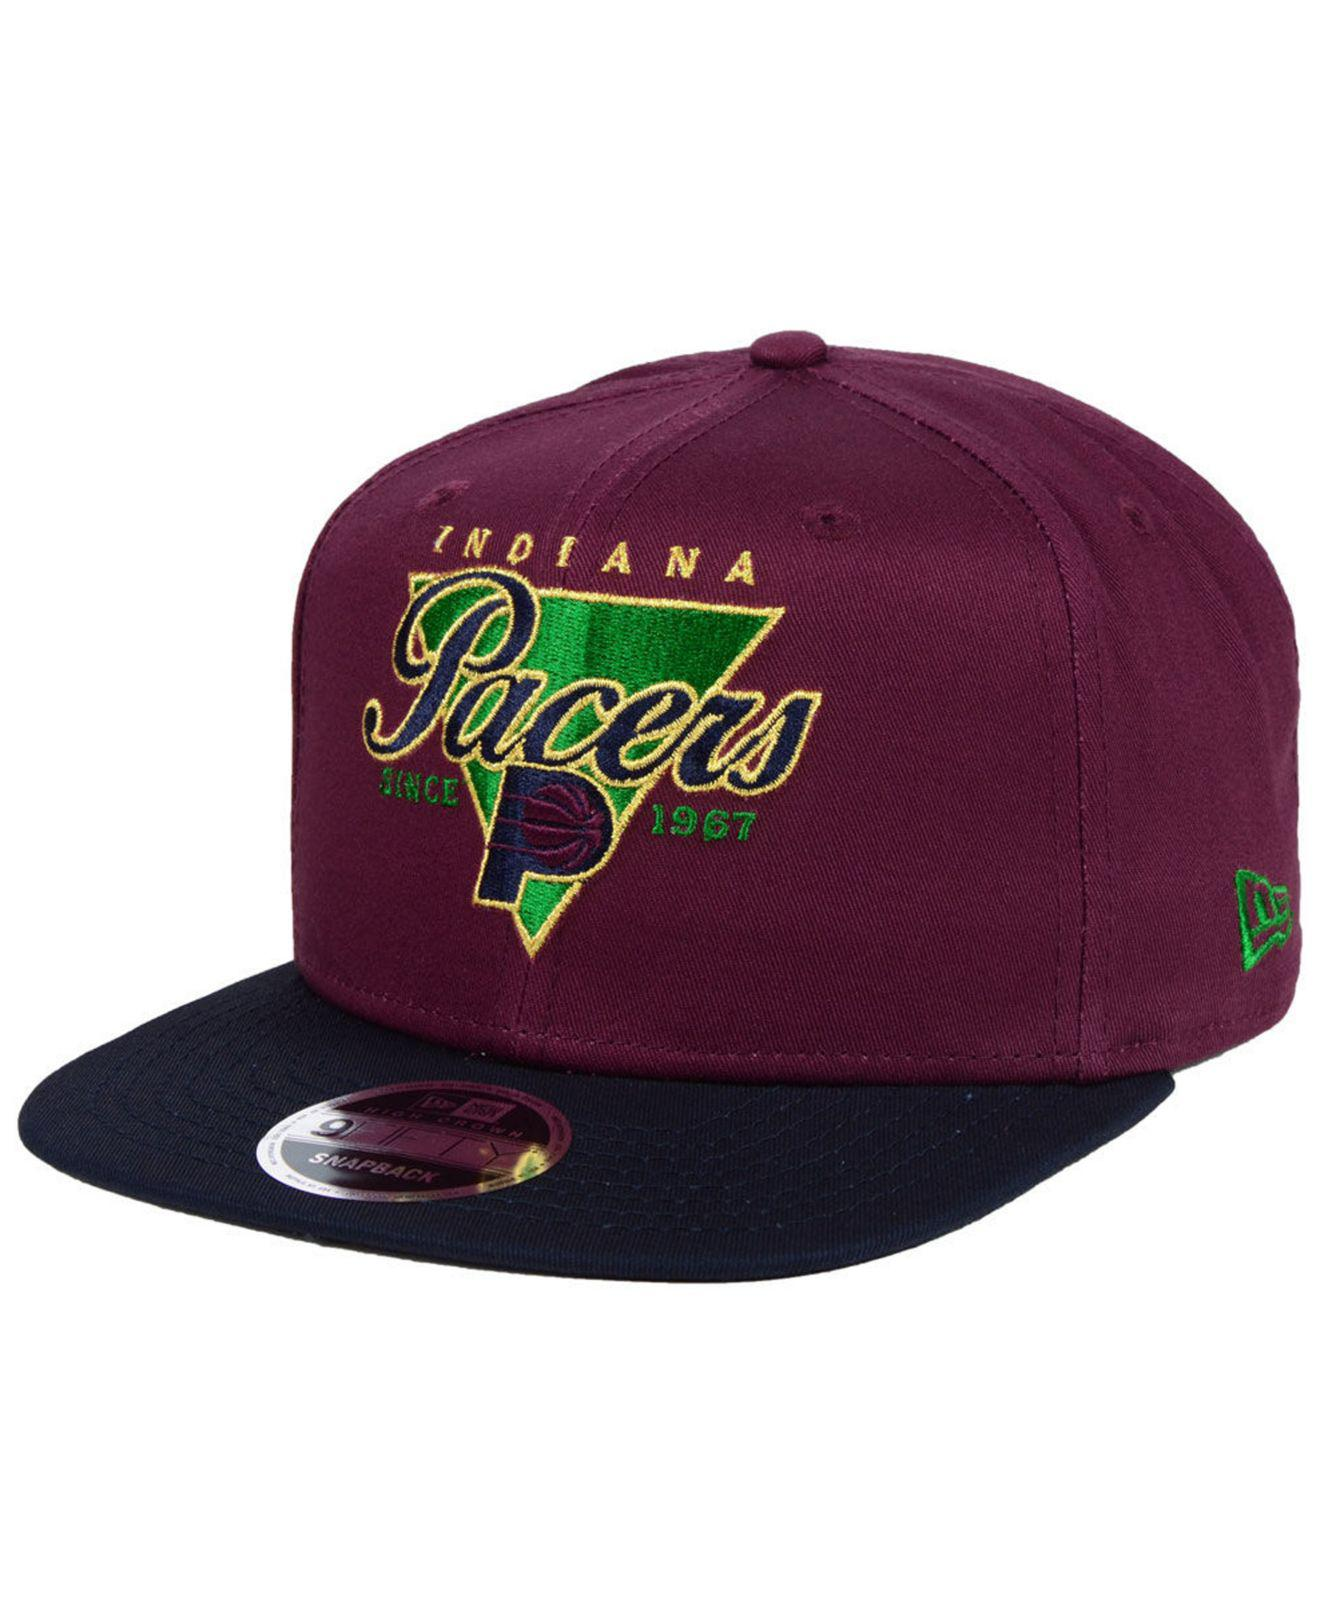 big sale 3e3a9 e79f3 KTZ Indiana Pacers 90s Throwback 9fifty Snapback Cap for Men - Lyst